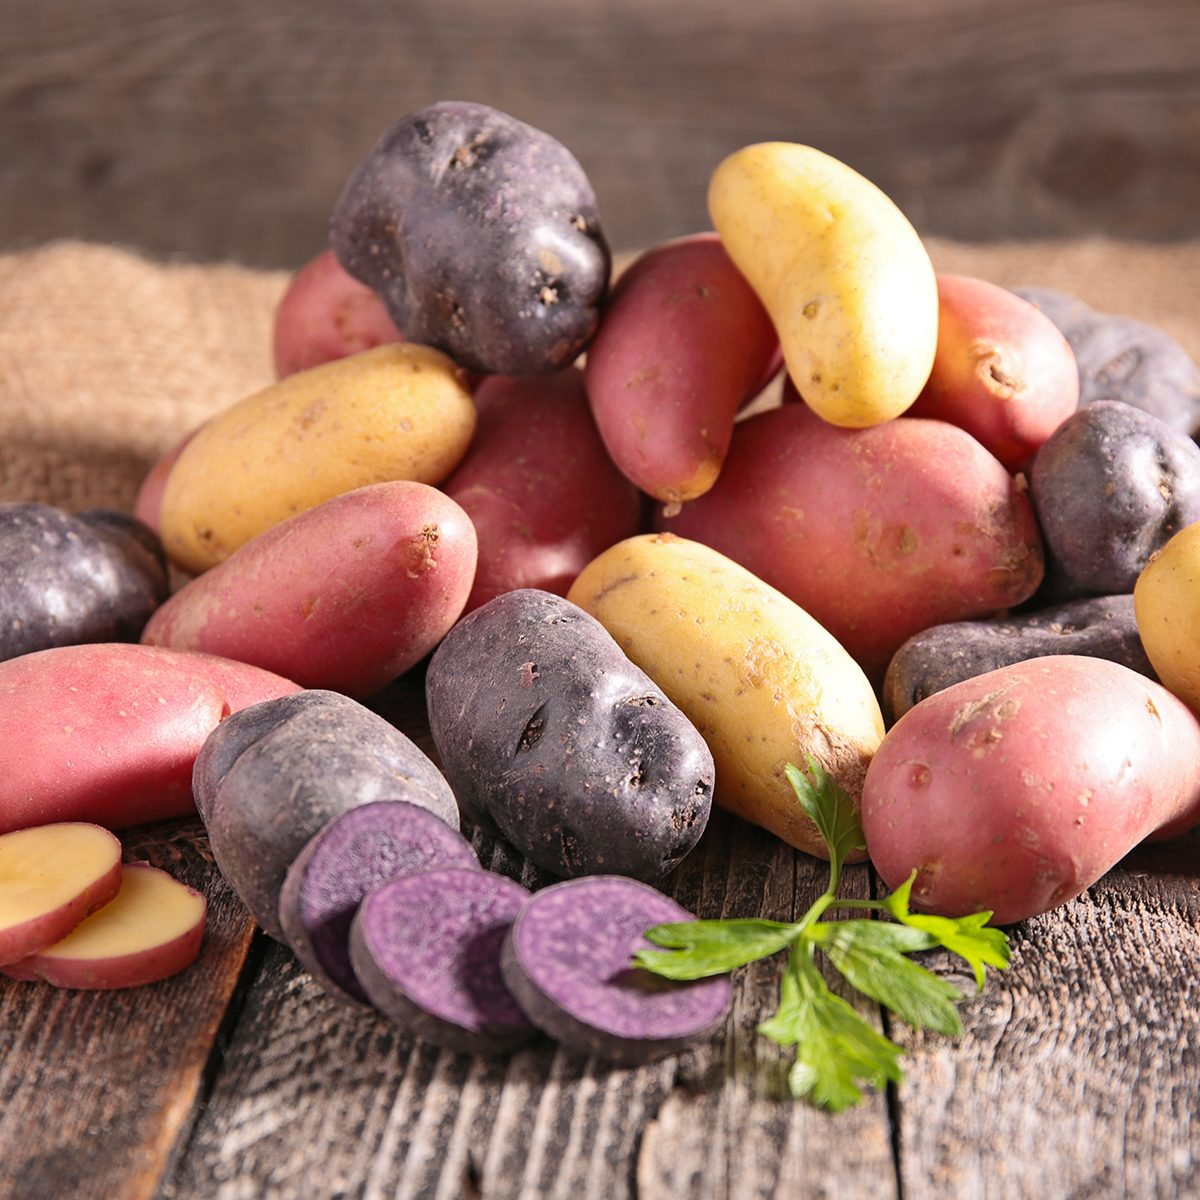 assortment of potatoes